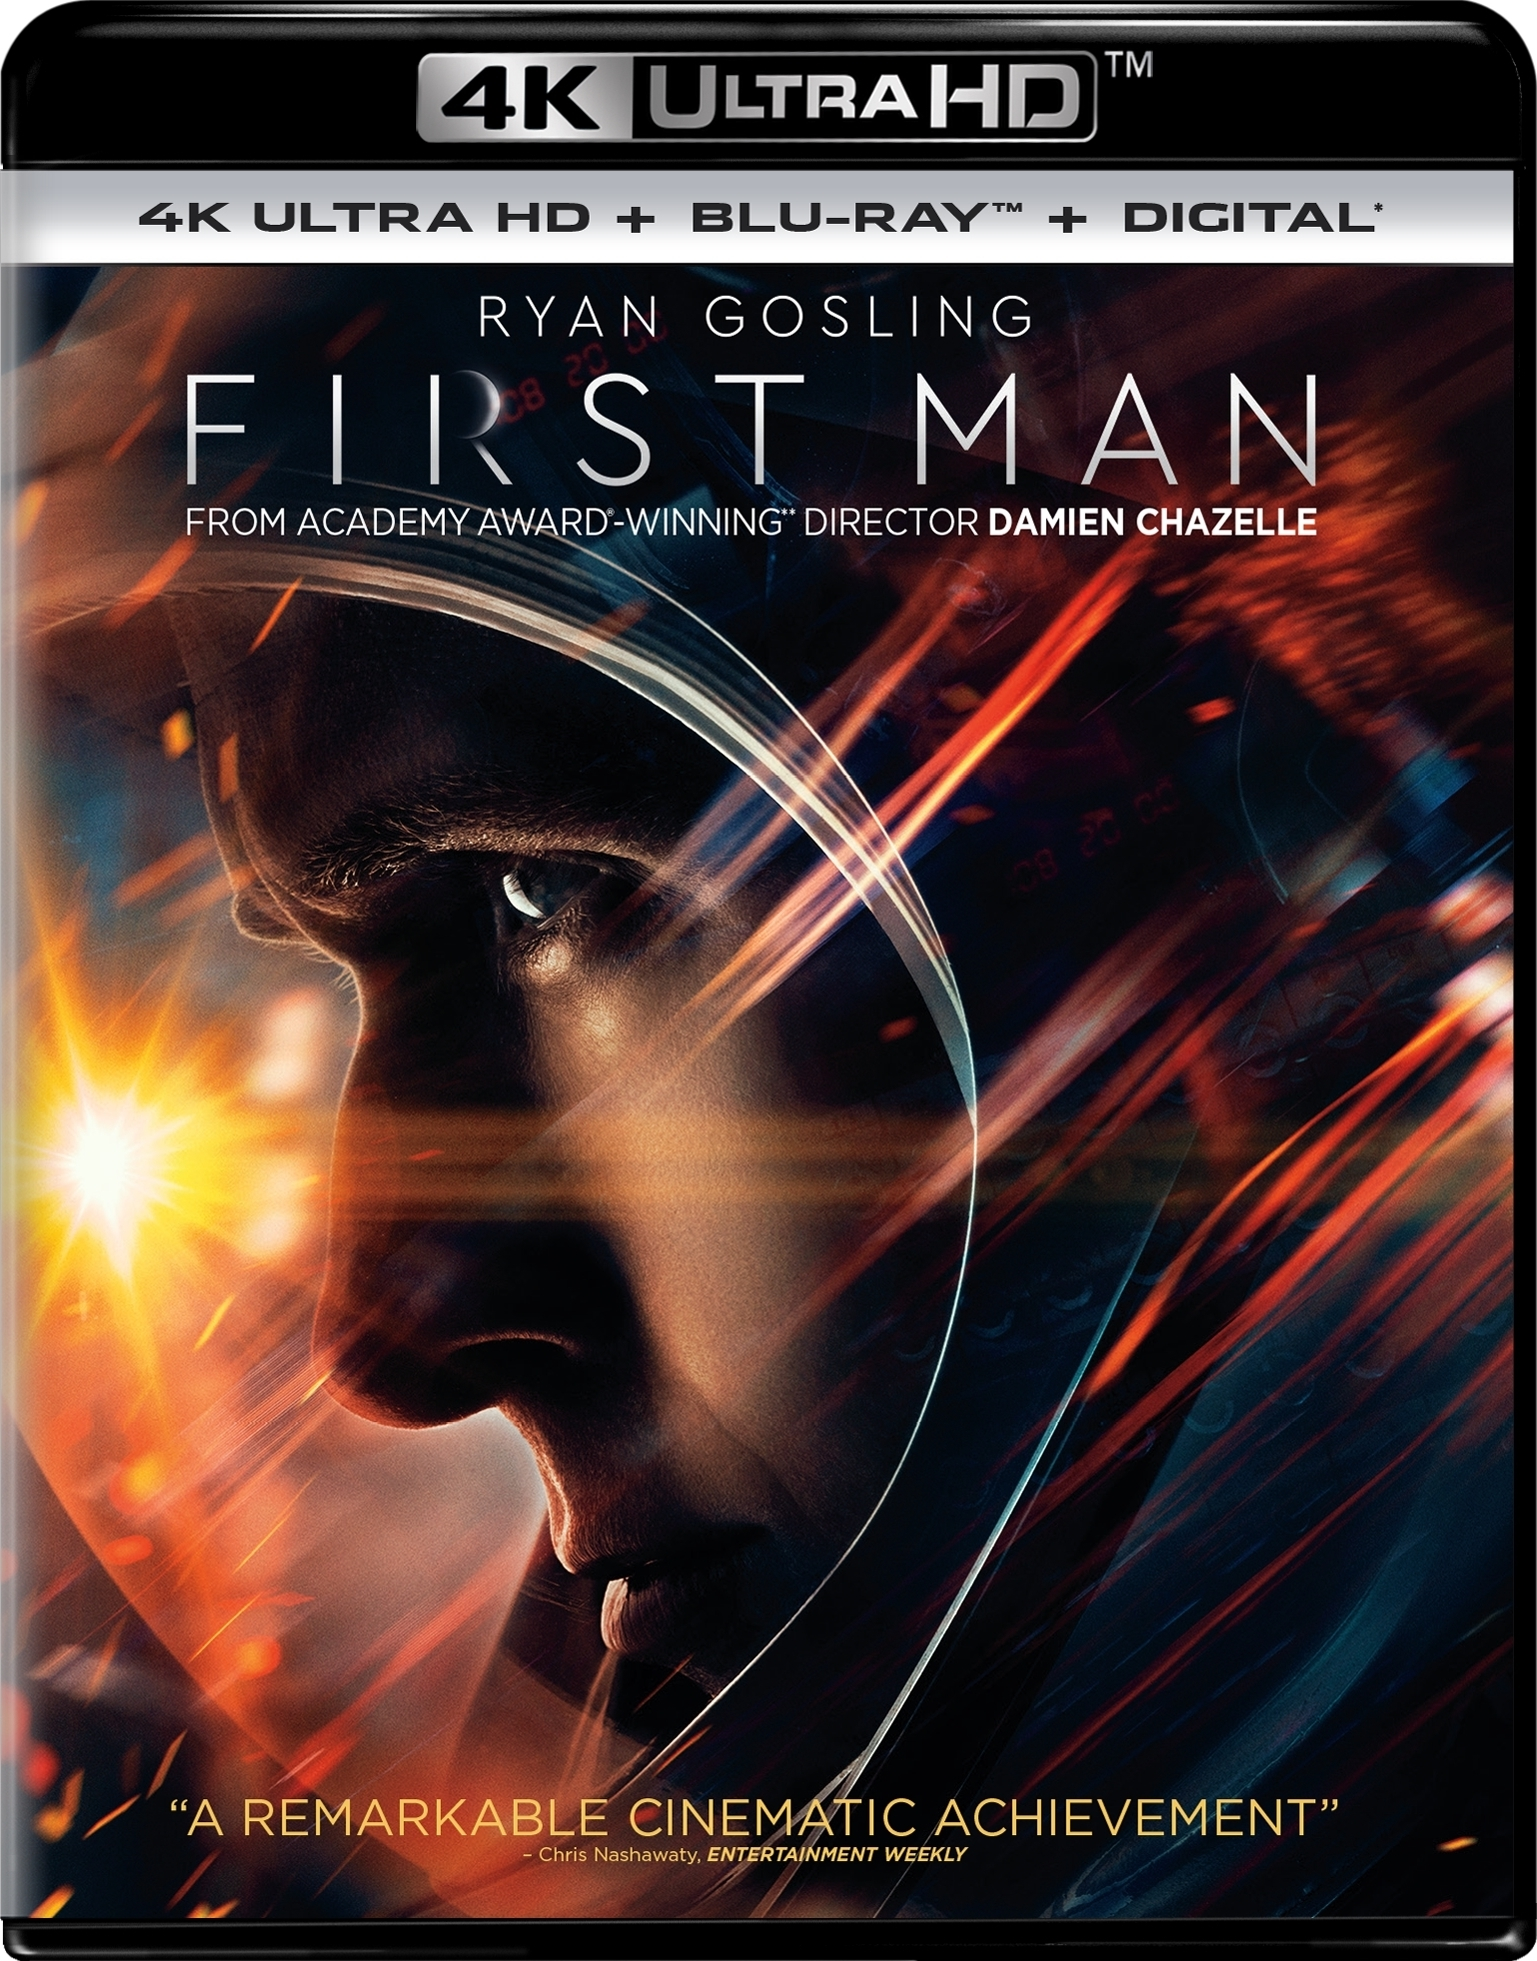 First Man (2018) poster image